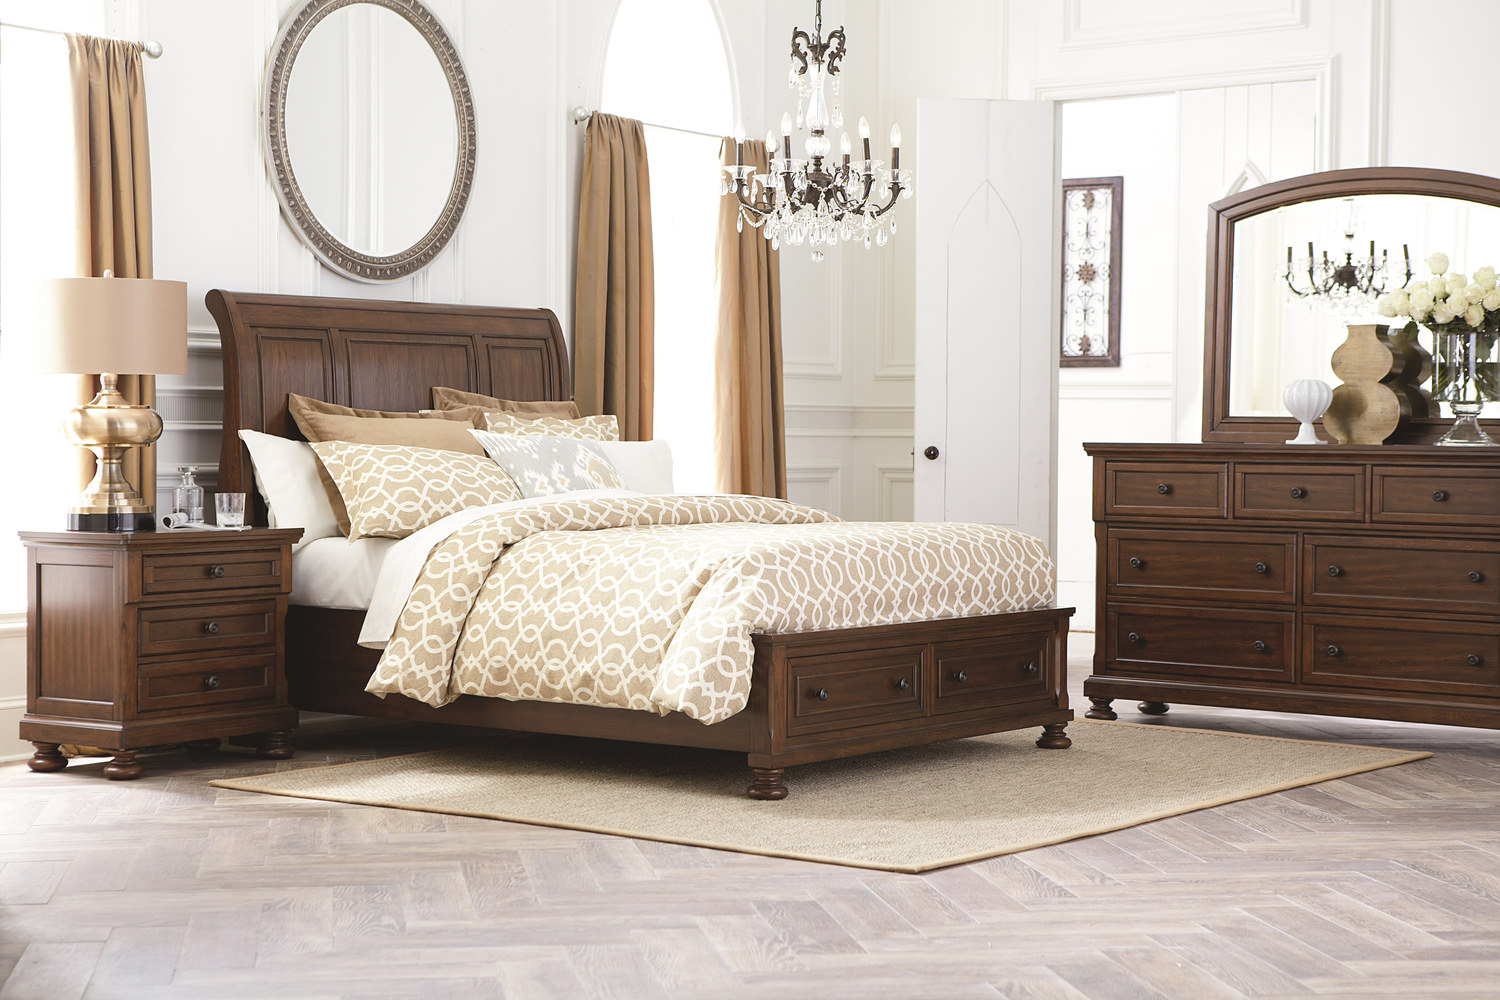 mirfield bedroom suite by thomas cole | hom furniture